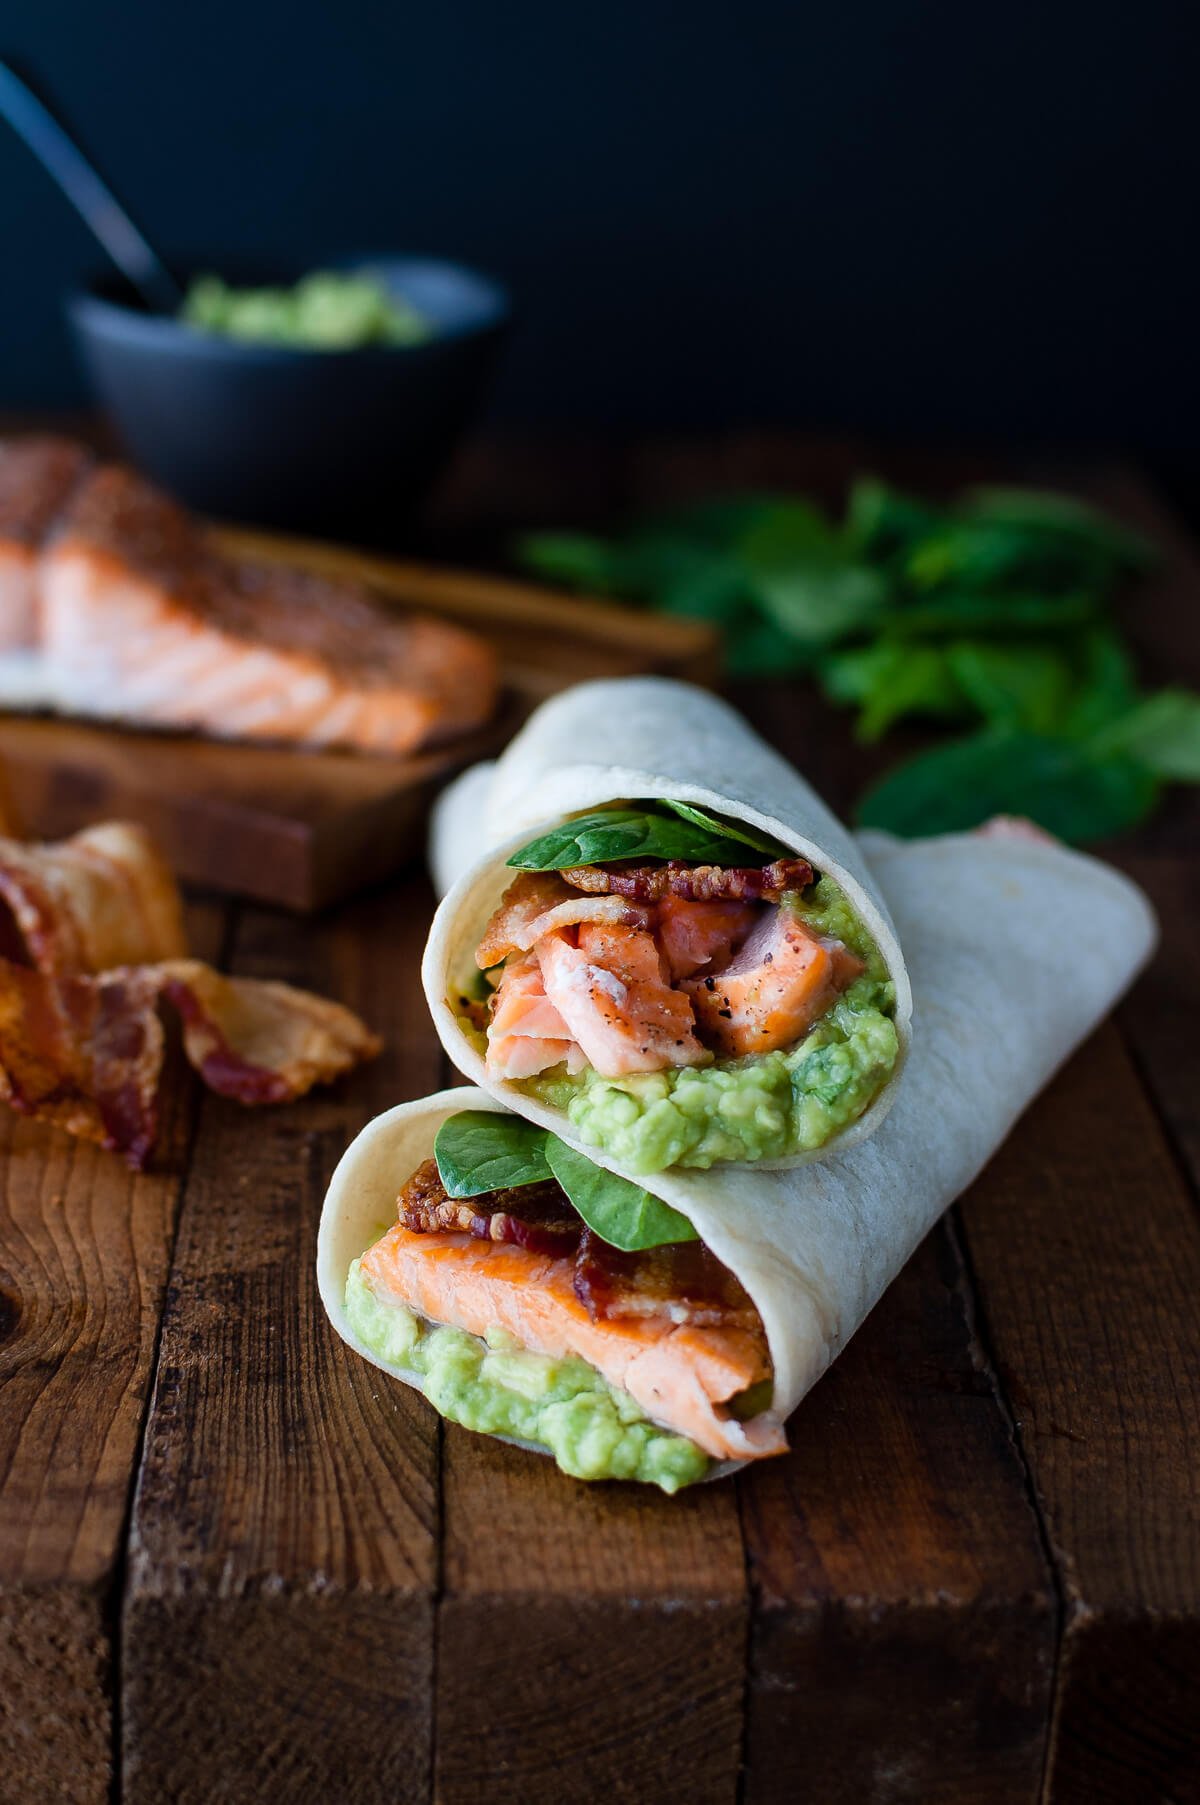 Salmon, guacamole, bacon, and spinach wrapped inside a tortilla on a wooden board.